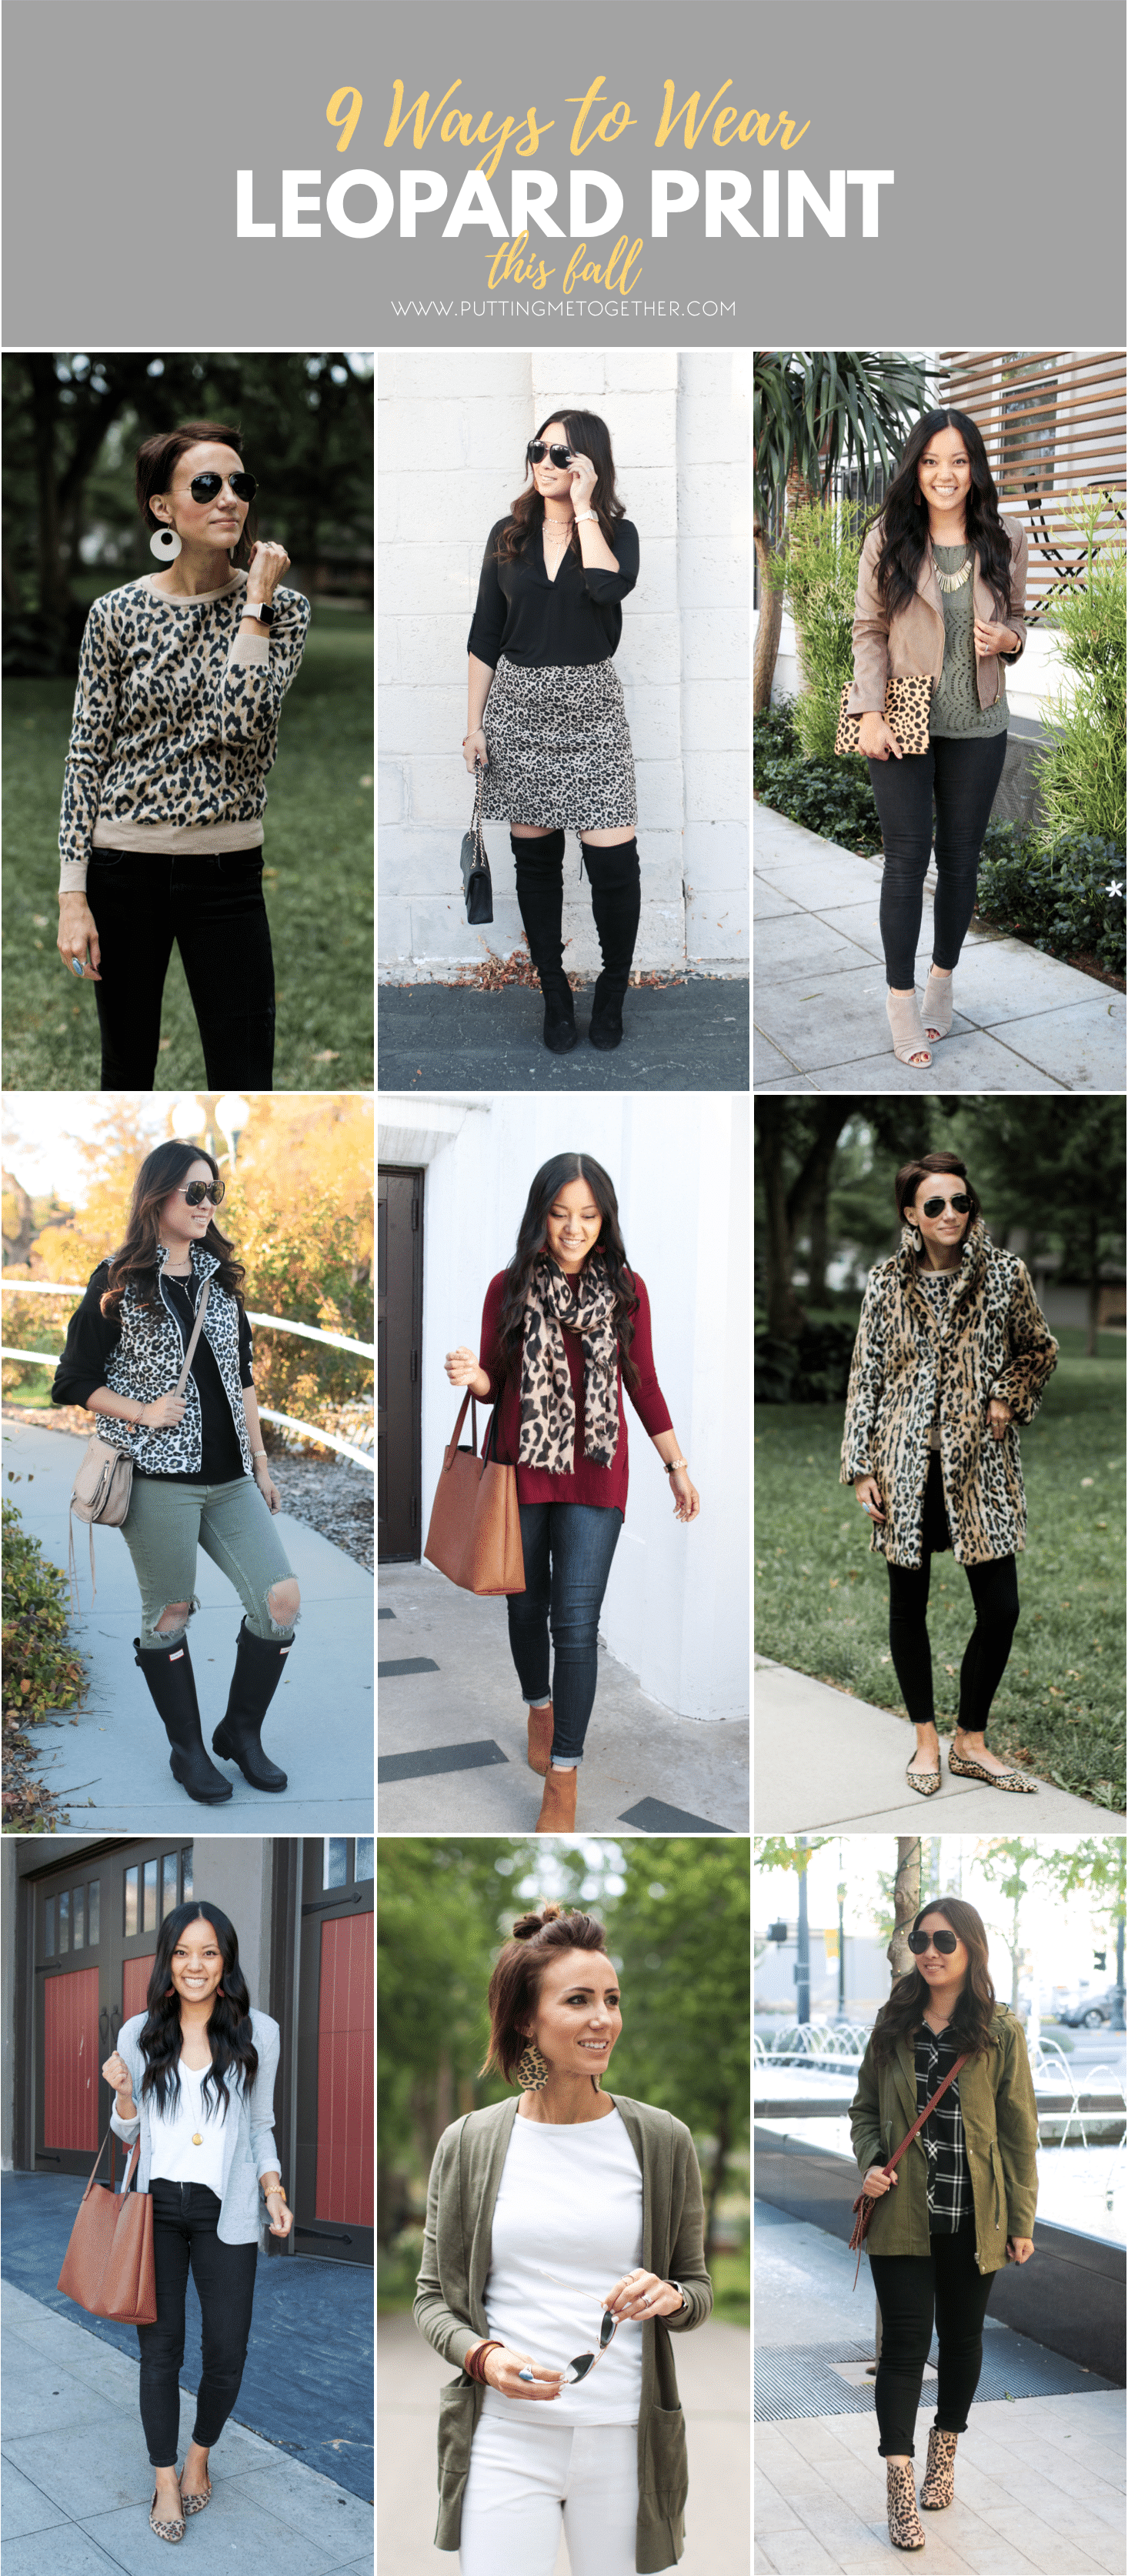 4d32212c93c 9 Ways to Wear Leopard Print for Fall - Putting Me Together